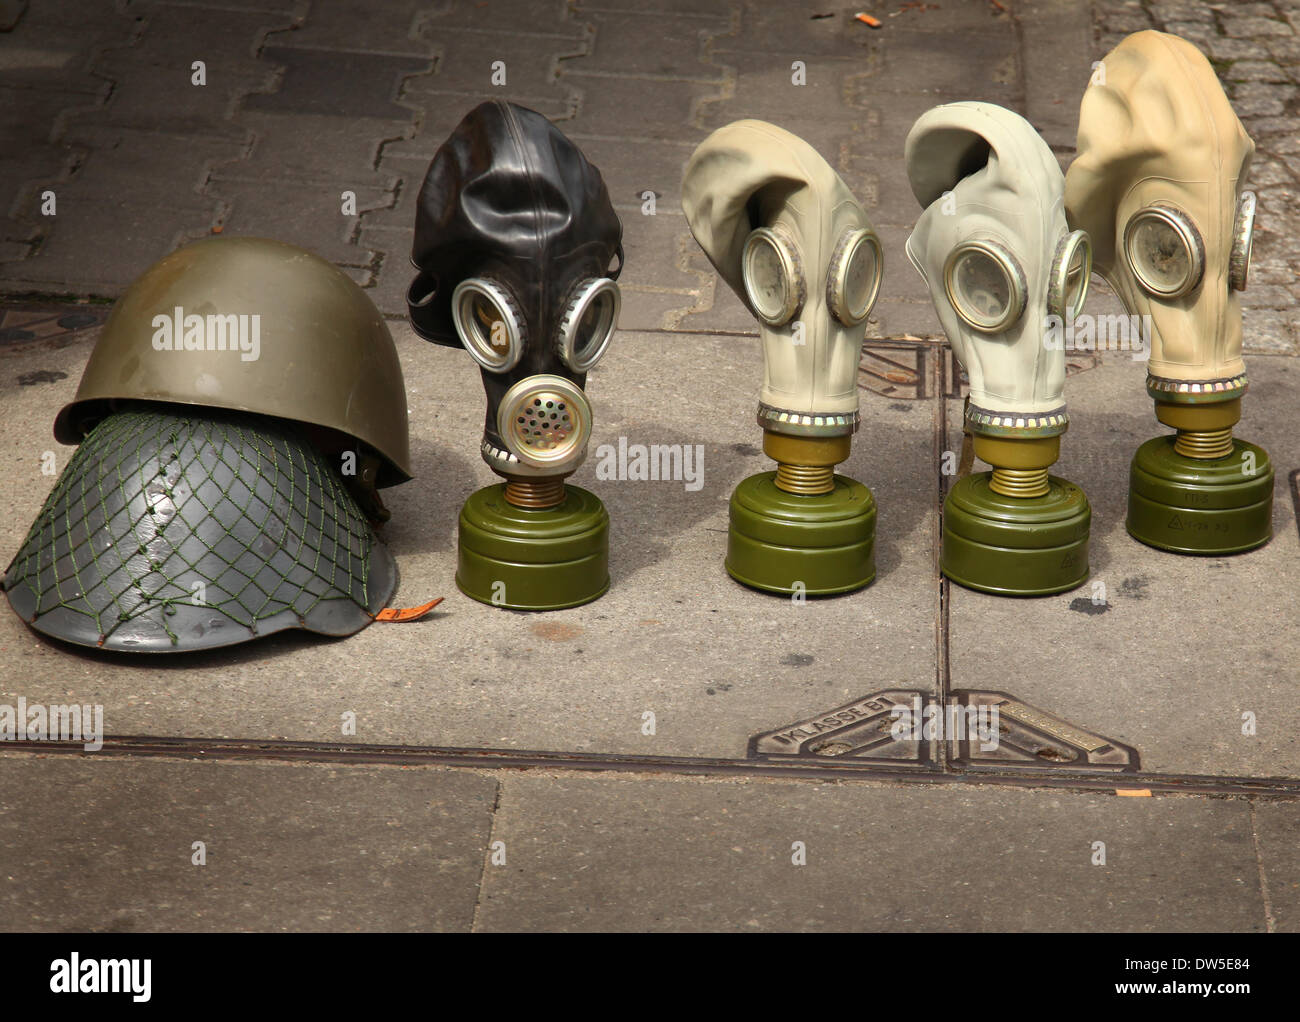 Gas masks and helmets are for sale as souvenirs at Checkpoint Charlie in Berlin, August 09, 2013. More and more tourists come to the German capital every year. The photo is part of a series on tourism in Berlin. Photo. Wolfram Steinberg dpa - Stock Image